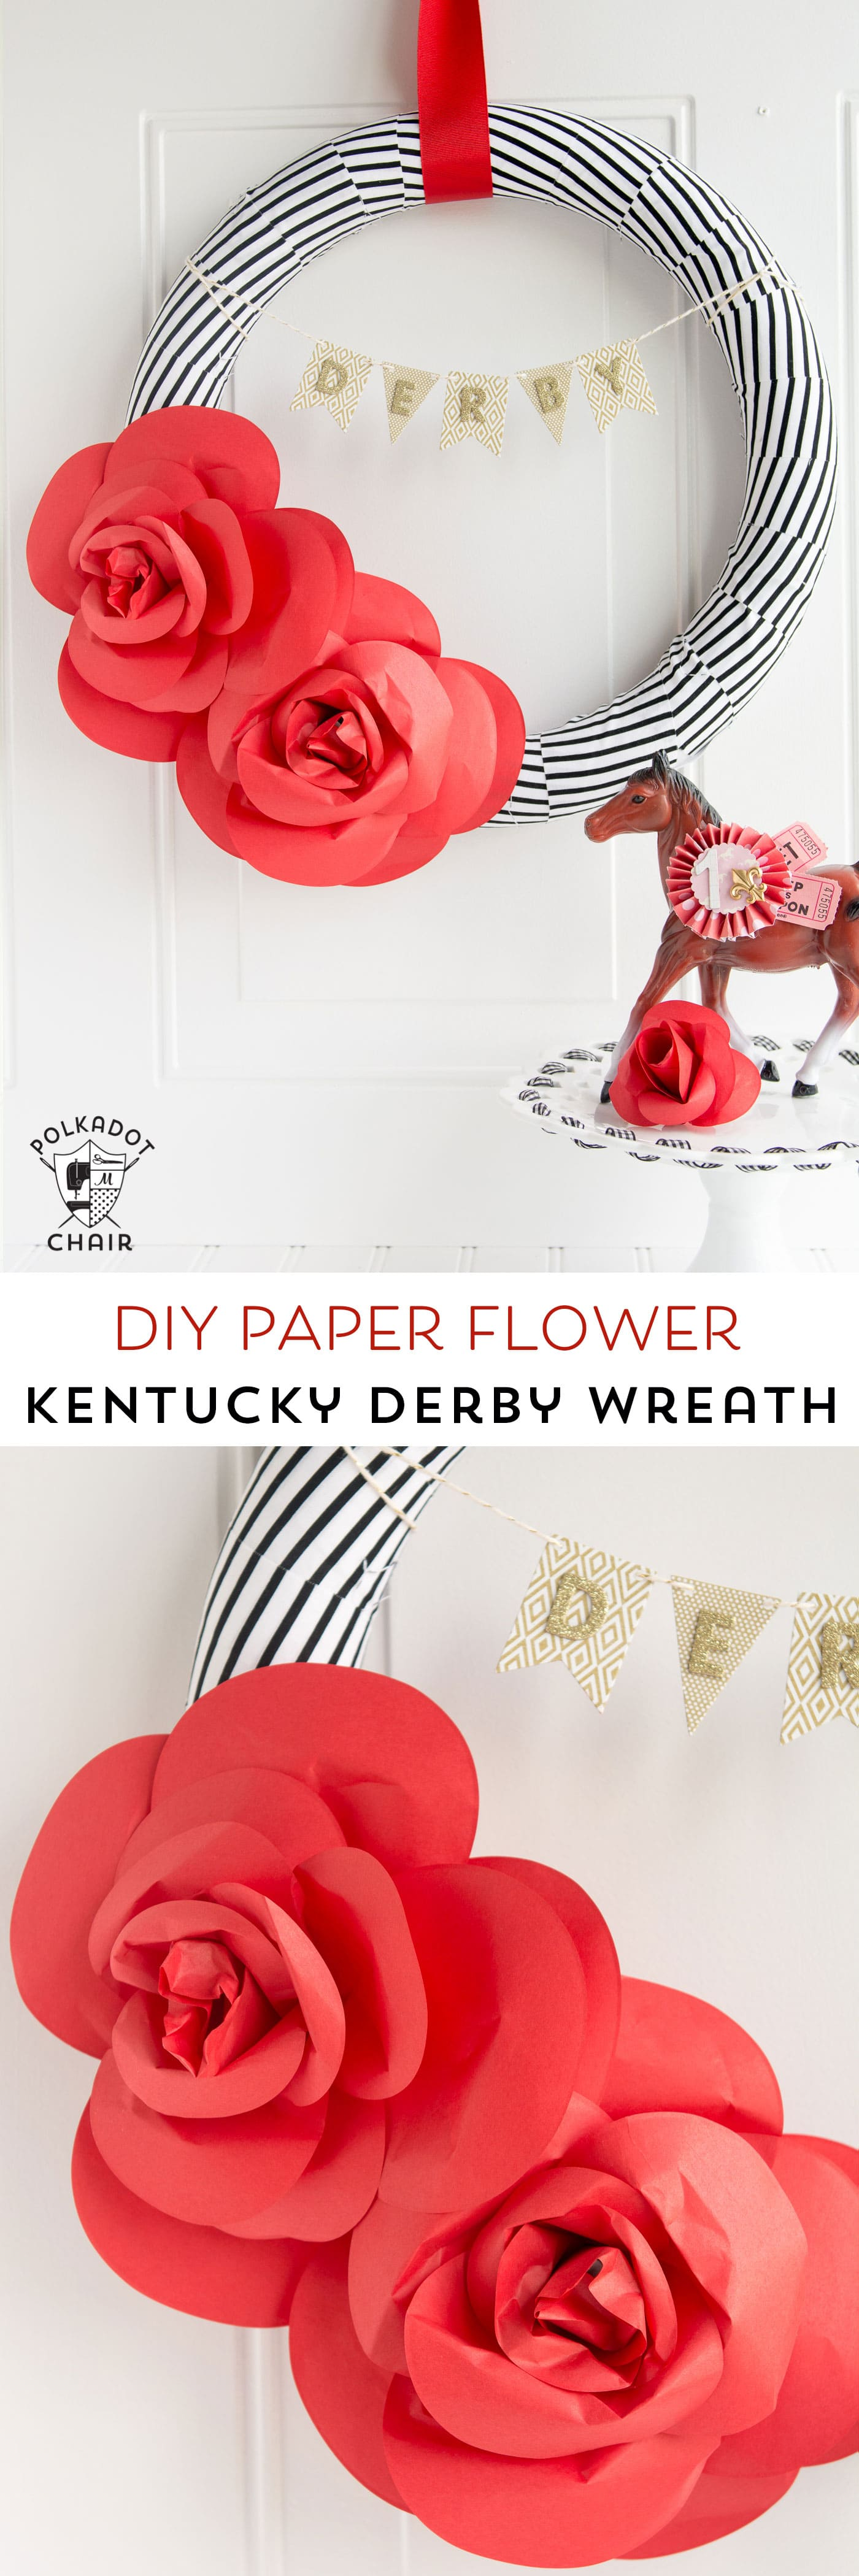 DIY Paper Flower Wreath Tutorial decorated for the Kentucky Derby; lots of cute ideas for Derby Decorations and Derby Parties on this site too!